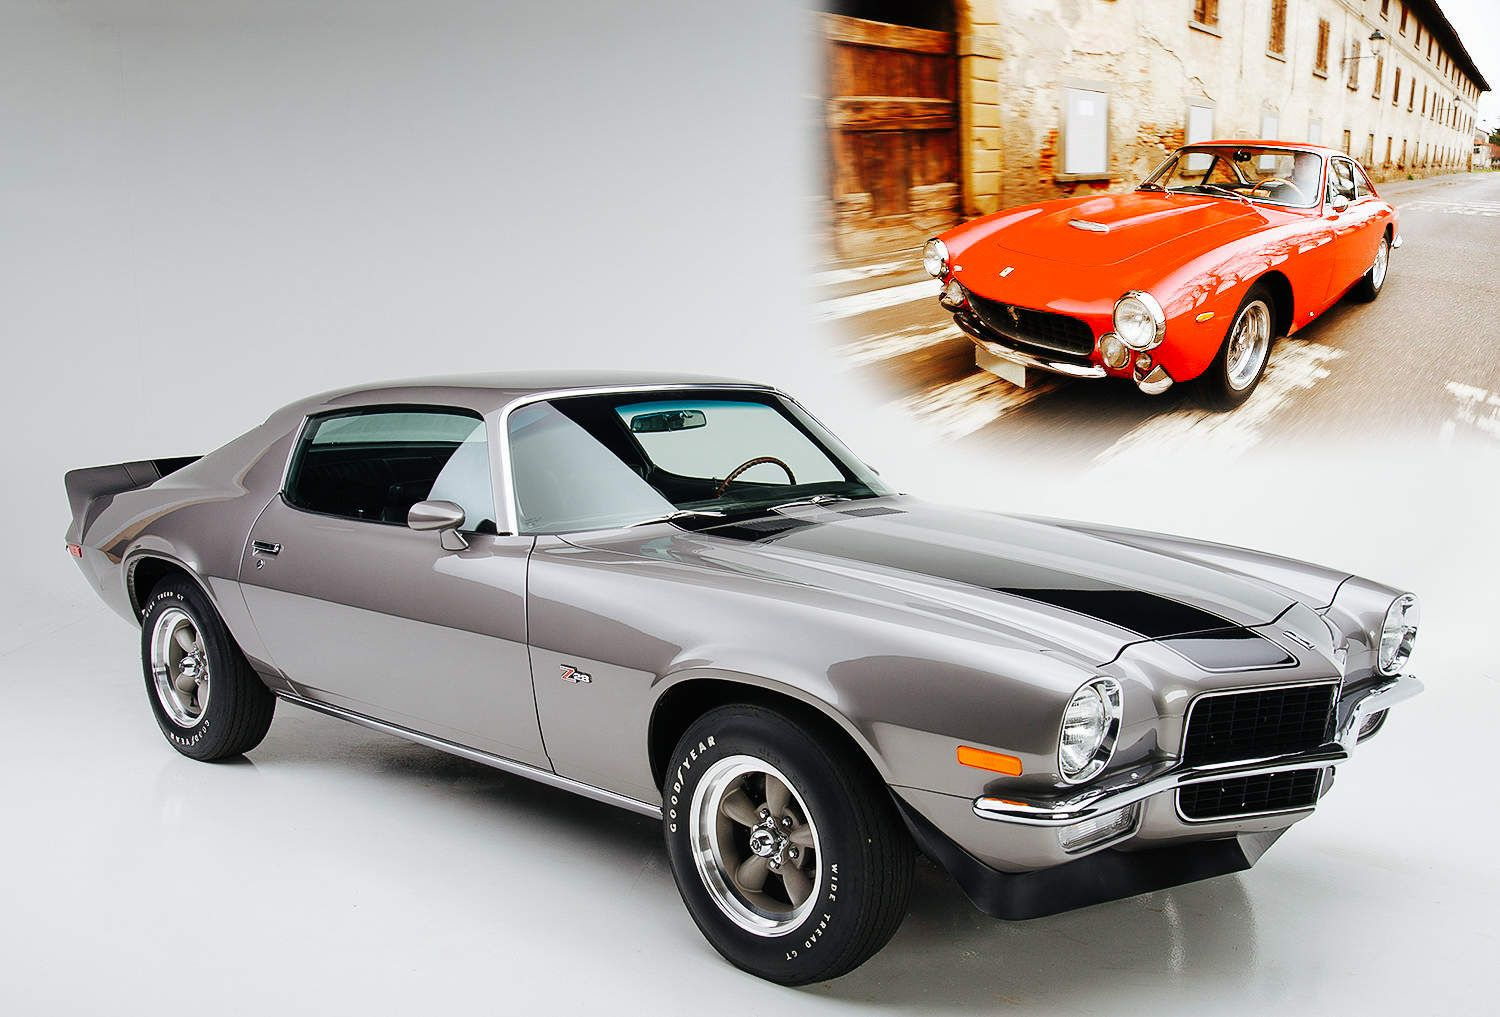 16 Things You Didn't Know About The Chevy Camaro